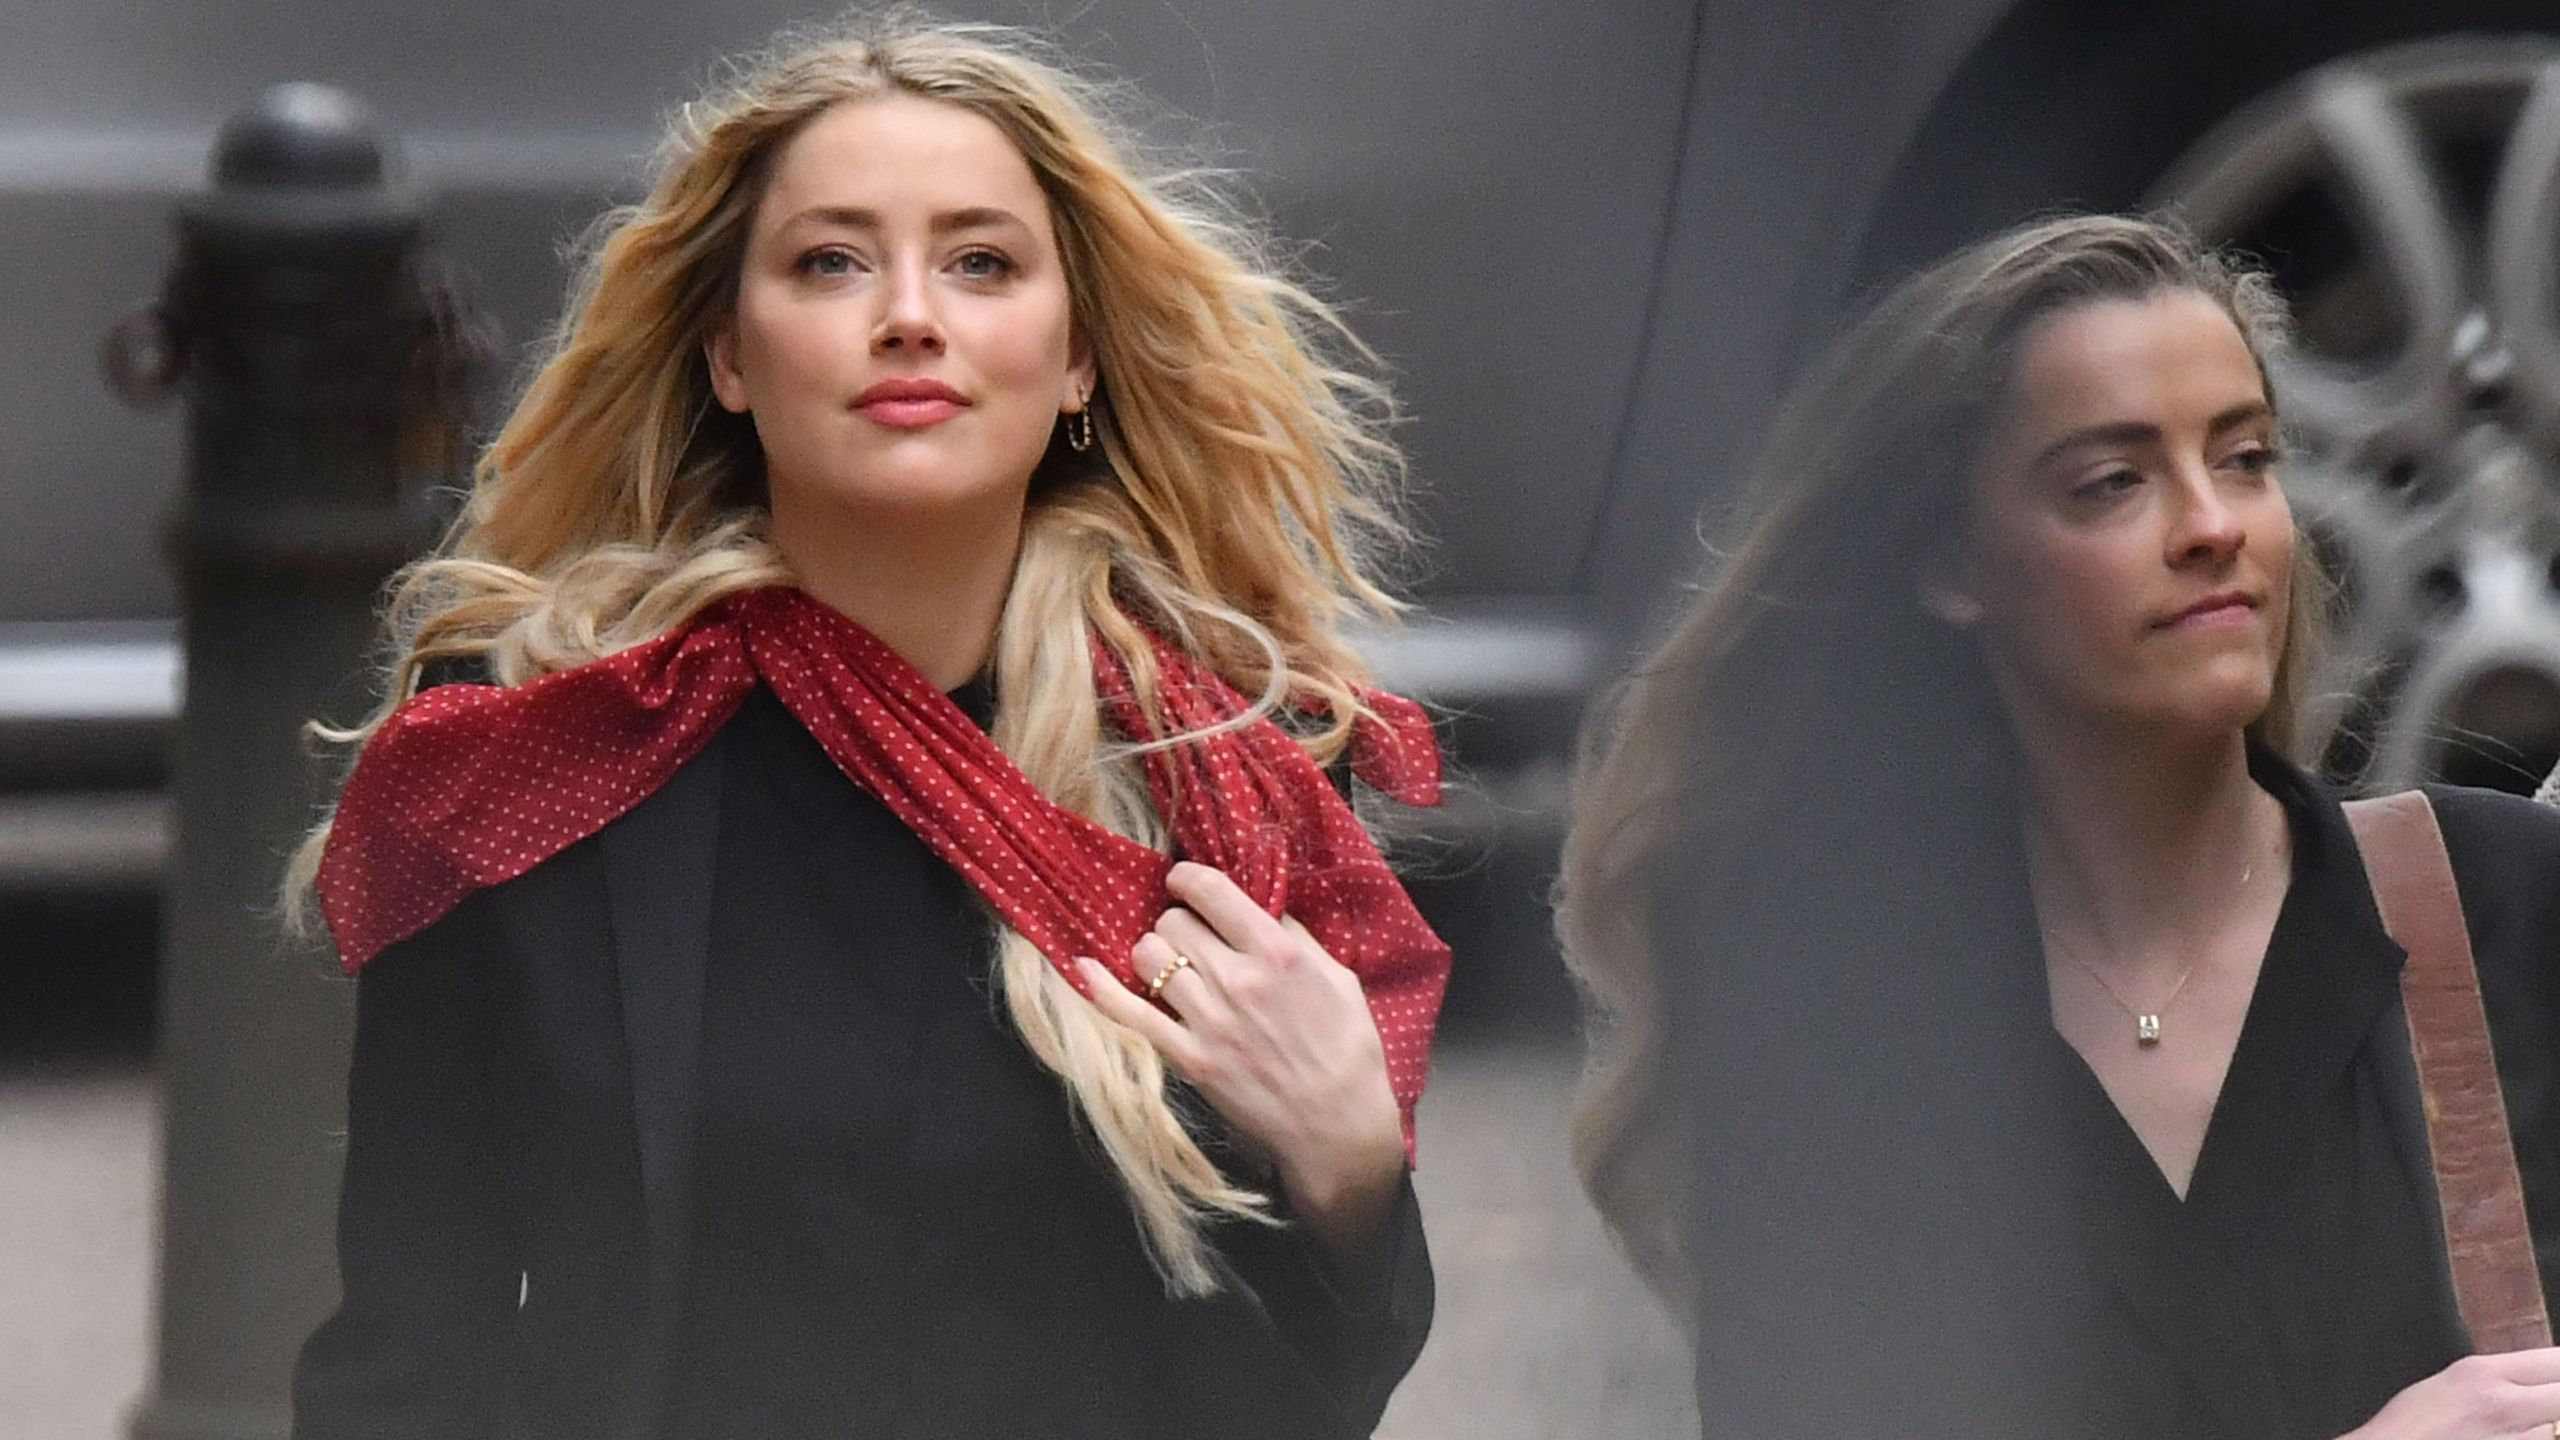 Actress Amber Heard arrives on day eight of the libel trial by her former husband actor Johnny Depp against News Group Newspapers (NGN), at the High Court in London, on July 16, 2020. (JUSTIN TALLIS/AFP via Getty Images)